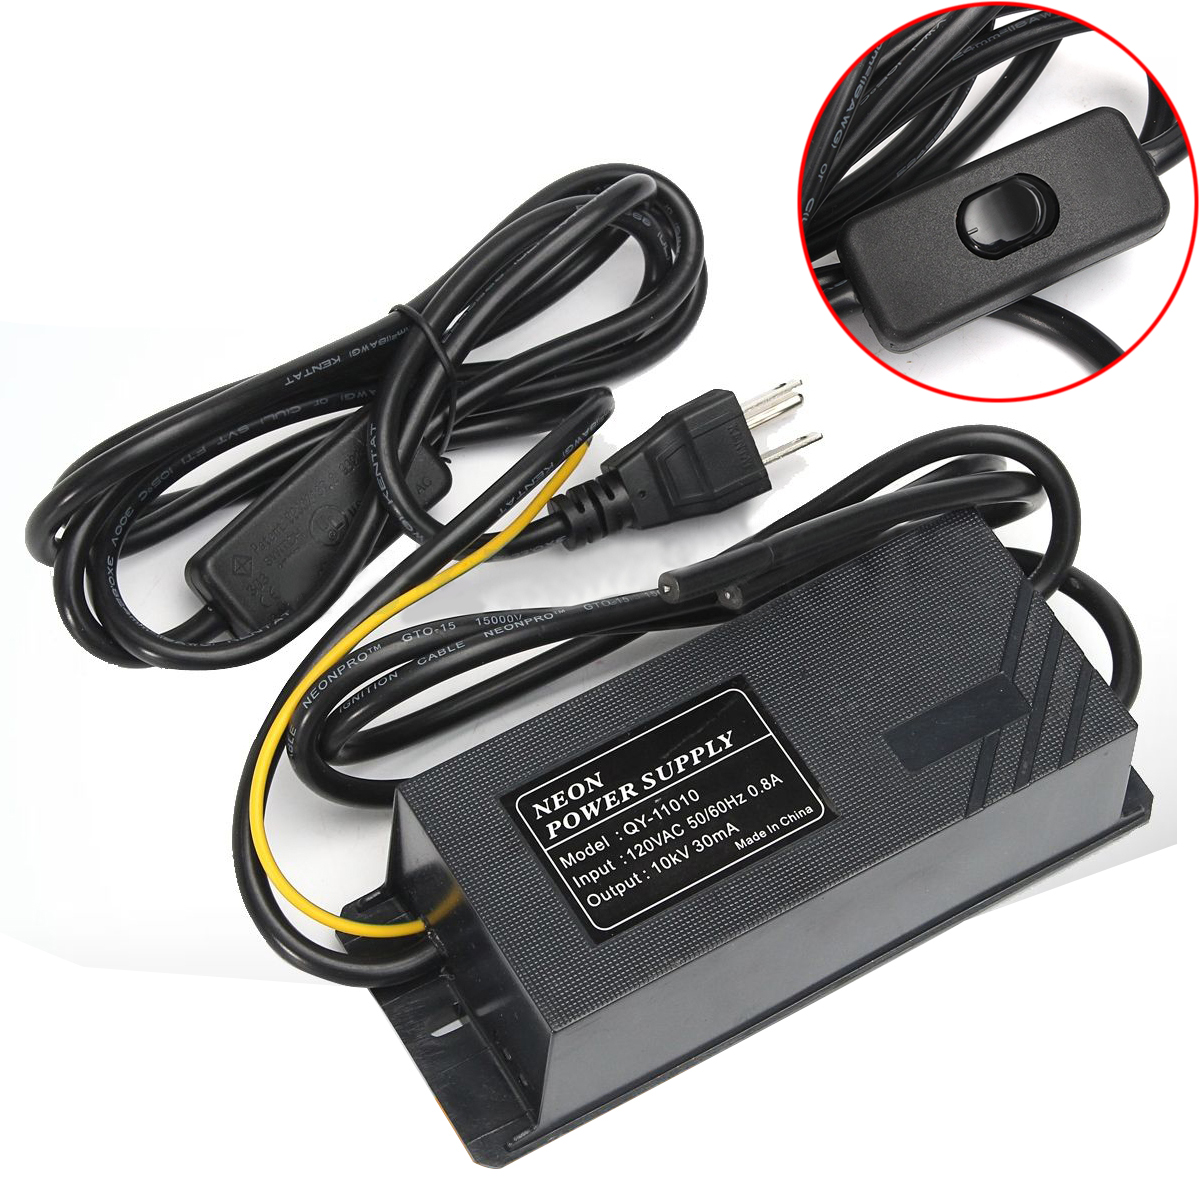 10KV 30mA 120V Black Neon Electronic Transformer Mayitr Practical Waterproof Neon Power Supply Light Rectifier Kit 164*61*48mm